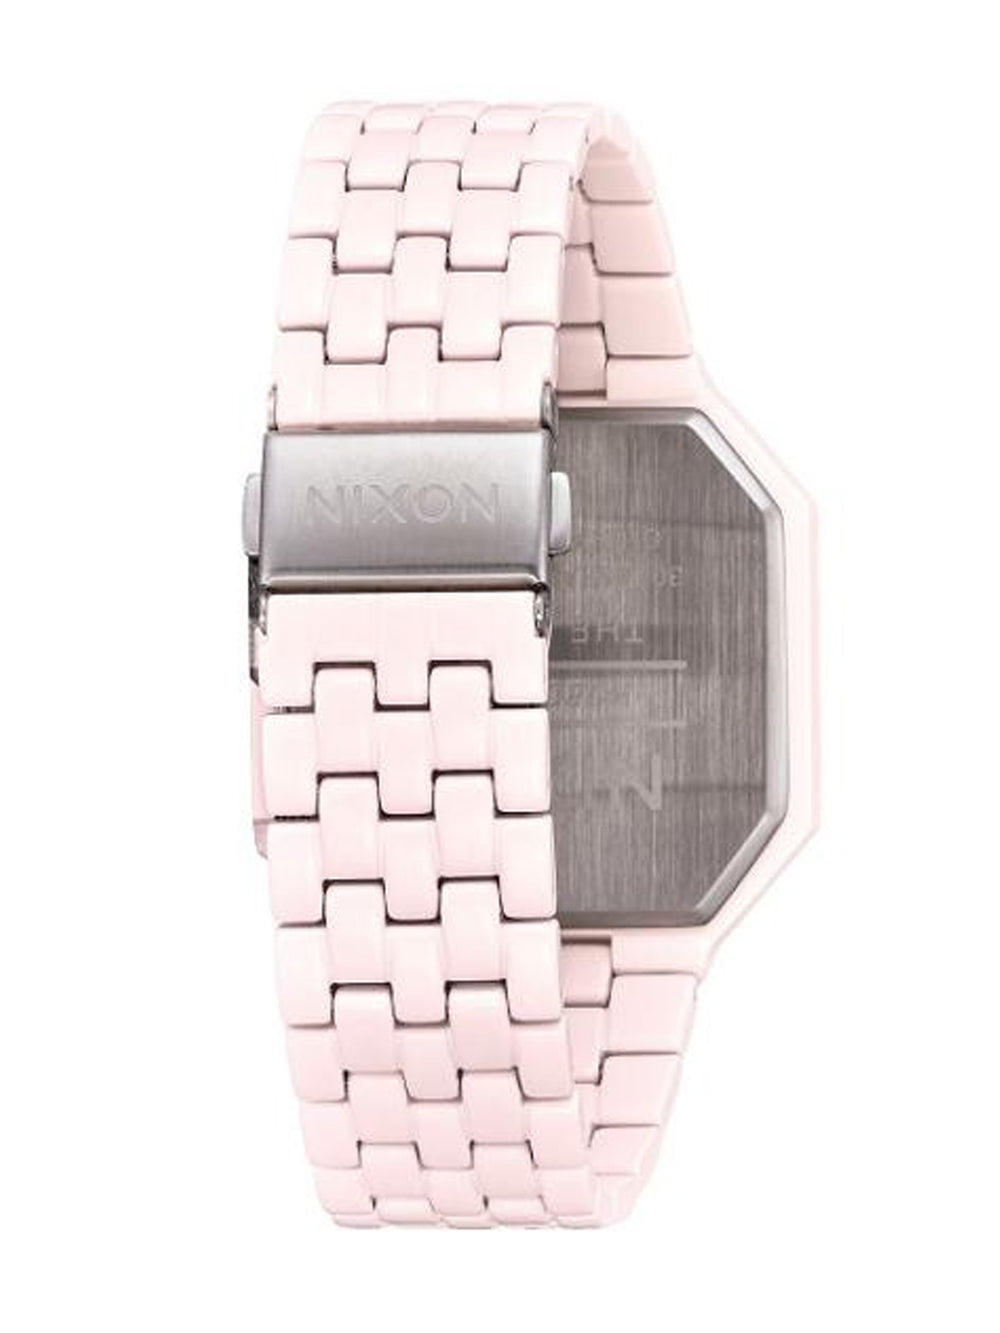 MENS REWATCH -RUN WATCH - ALL MATTE PETAL